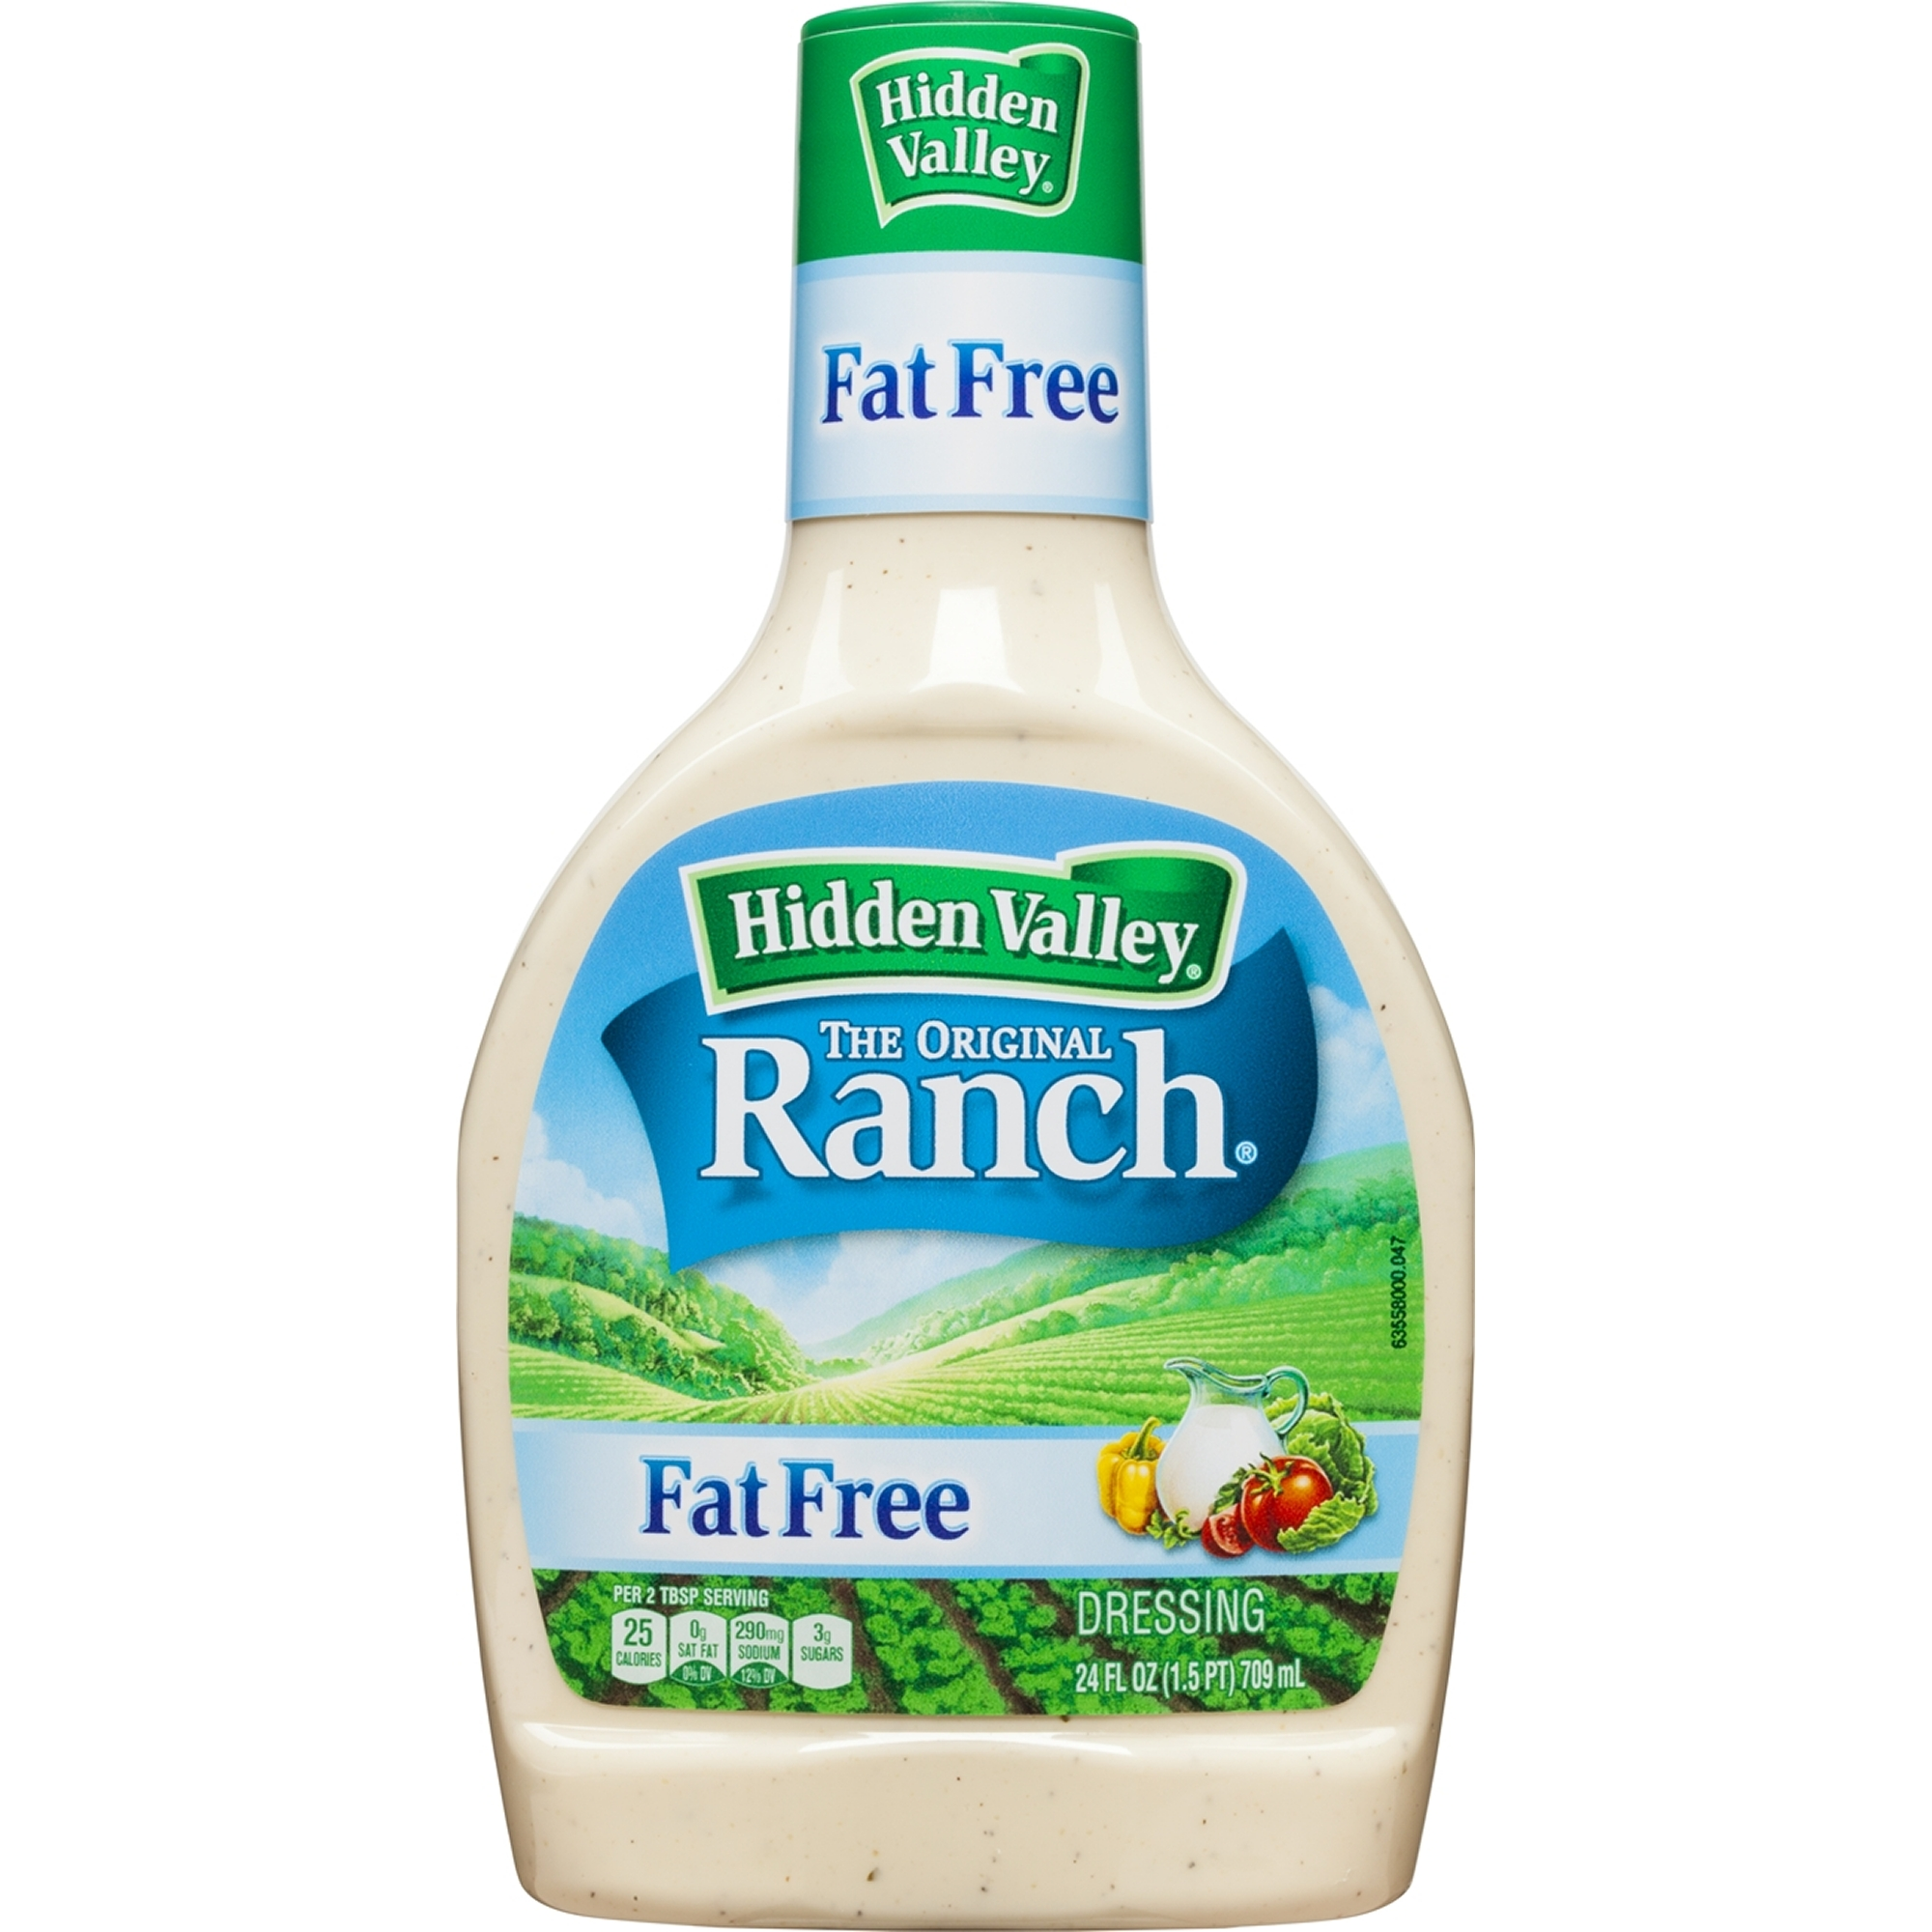 Hidden Valley Original Ranch Fat Free Dressing, 24 Ounces